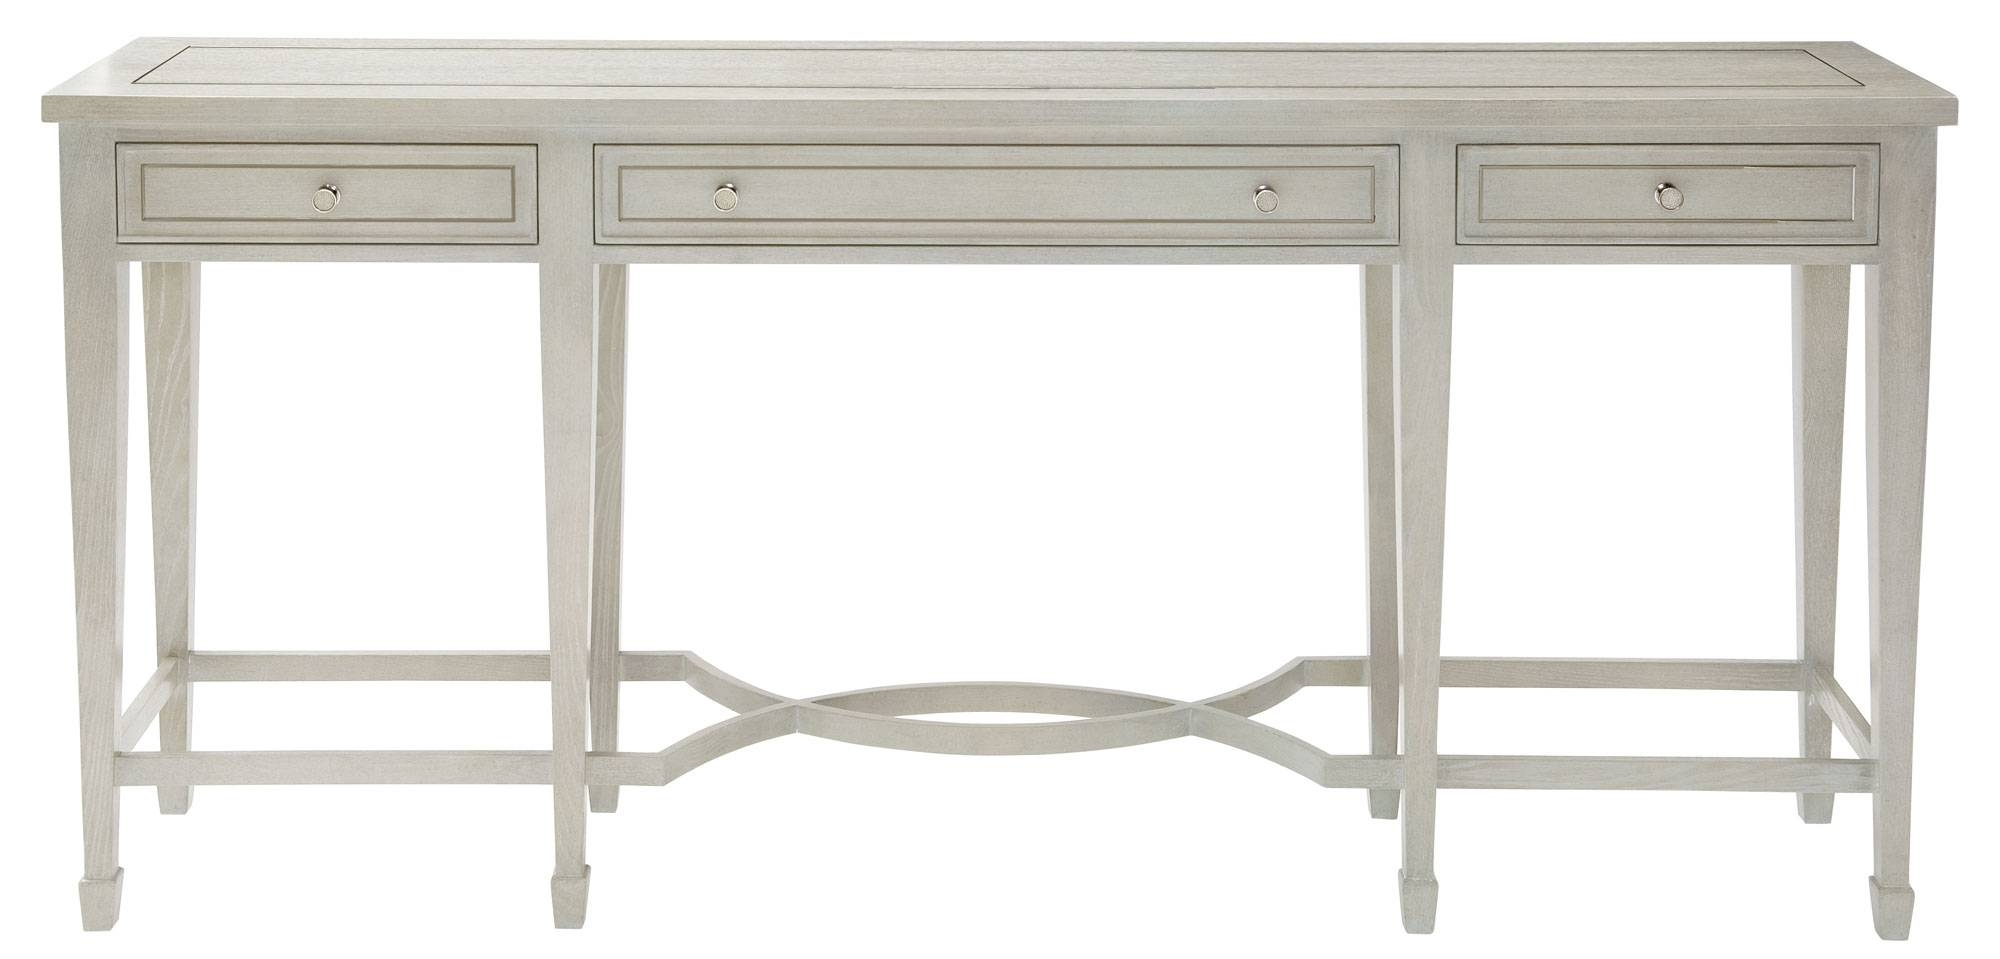 Console Table | Bernhardt throughout Bernhardt Console Tables (Image 11 of 15)